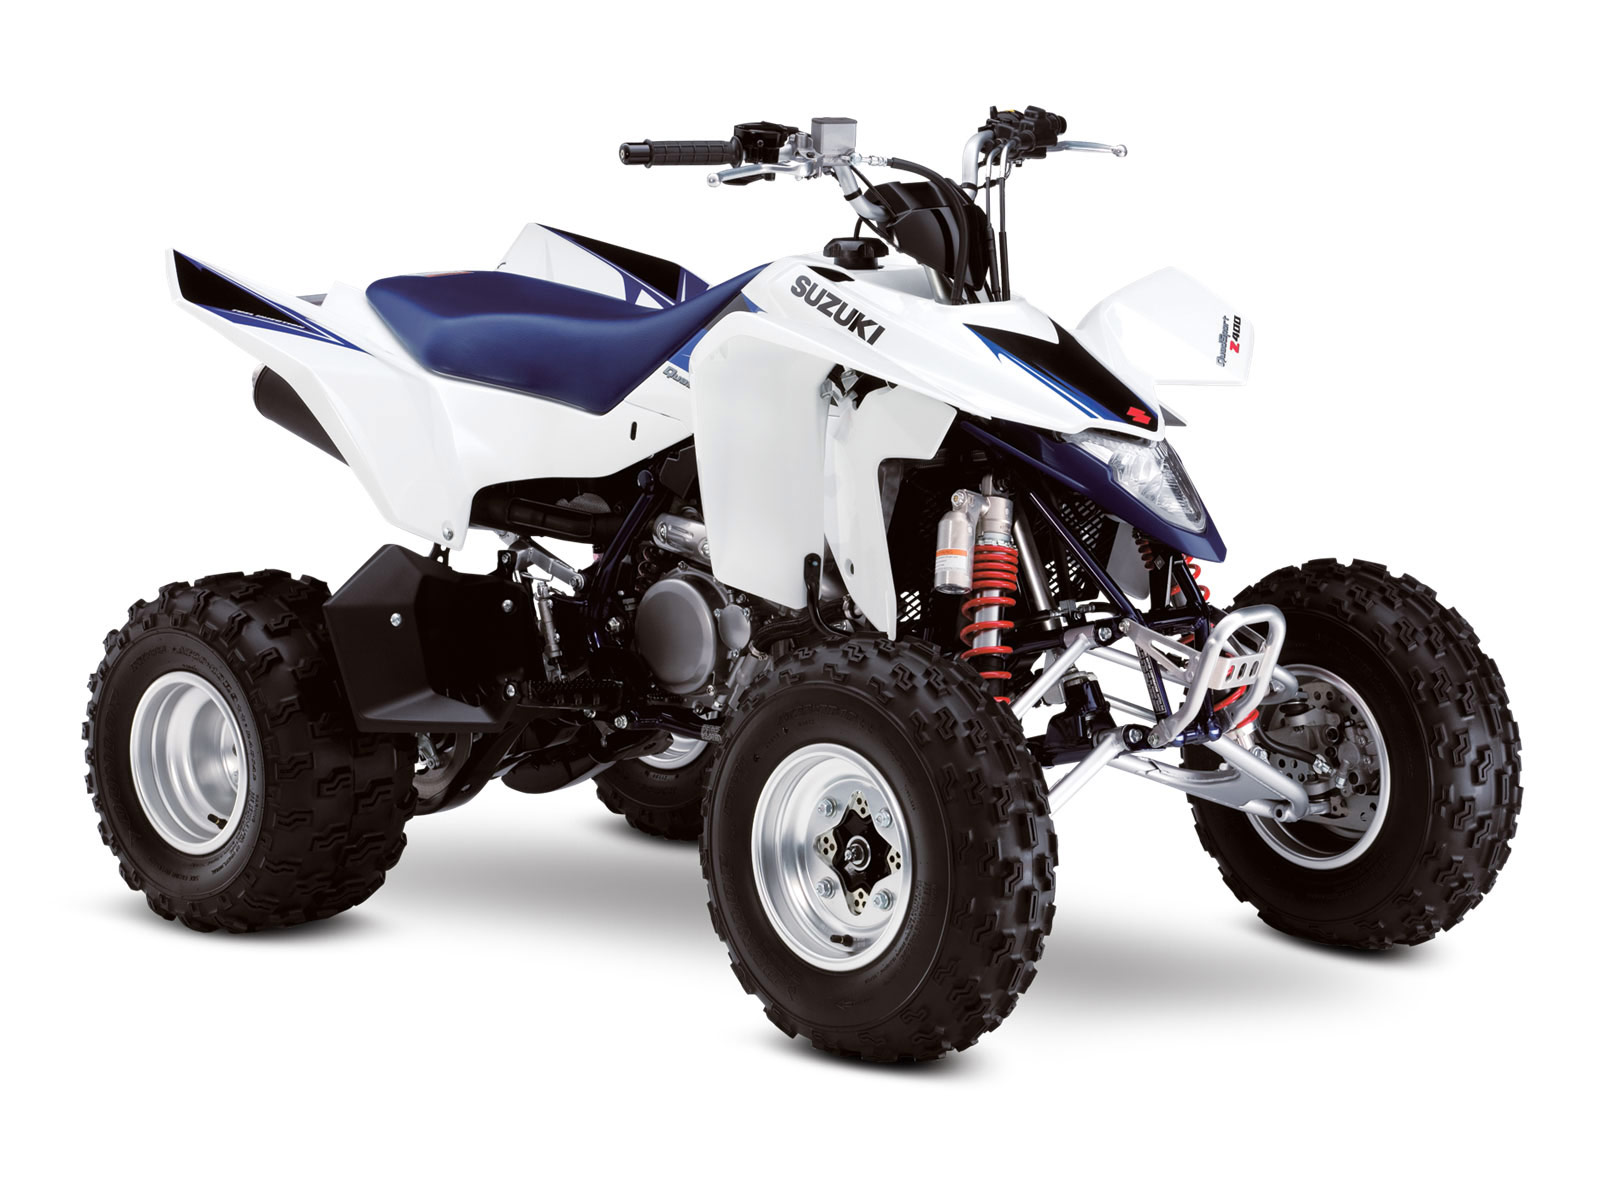 2012 suzuki quadsport z400 atv insurance information. Black Bedroom Furniture Sets. Home Design Ideas